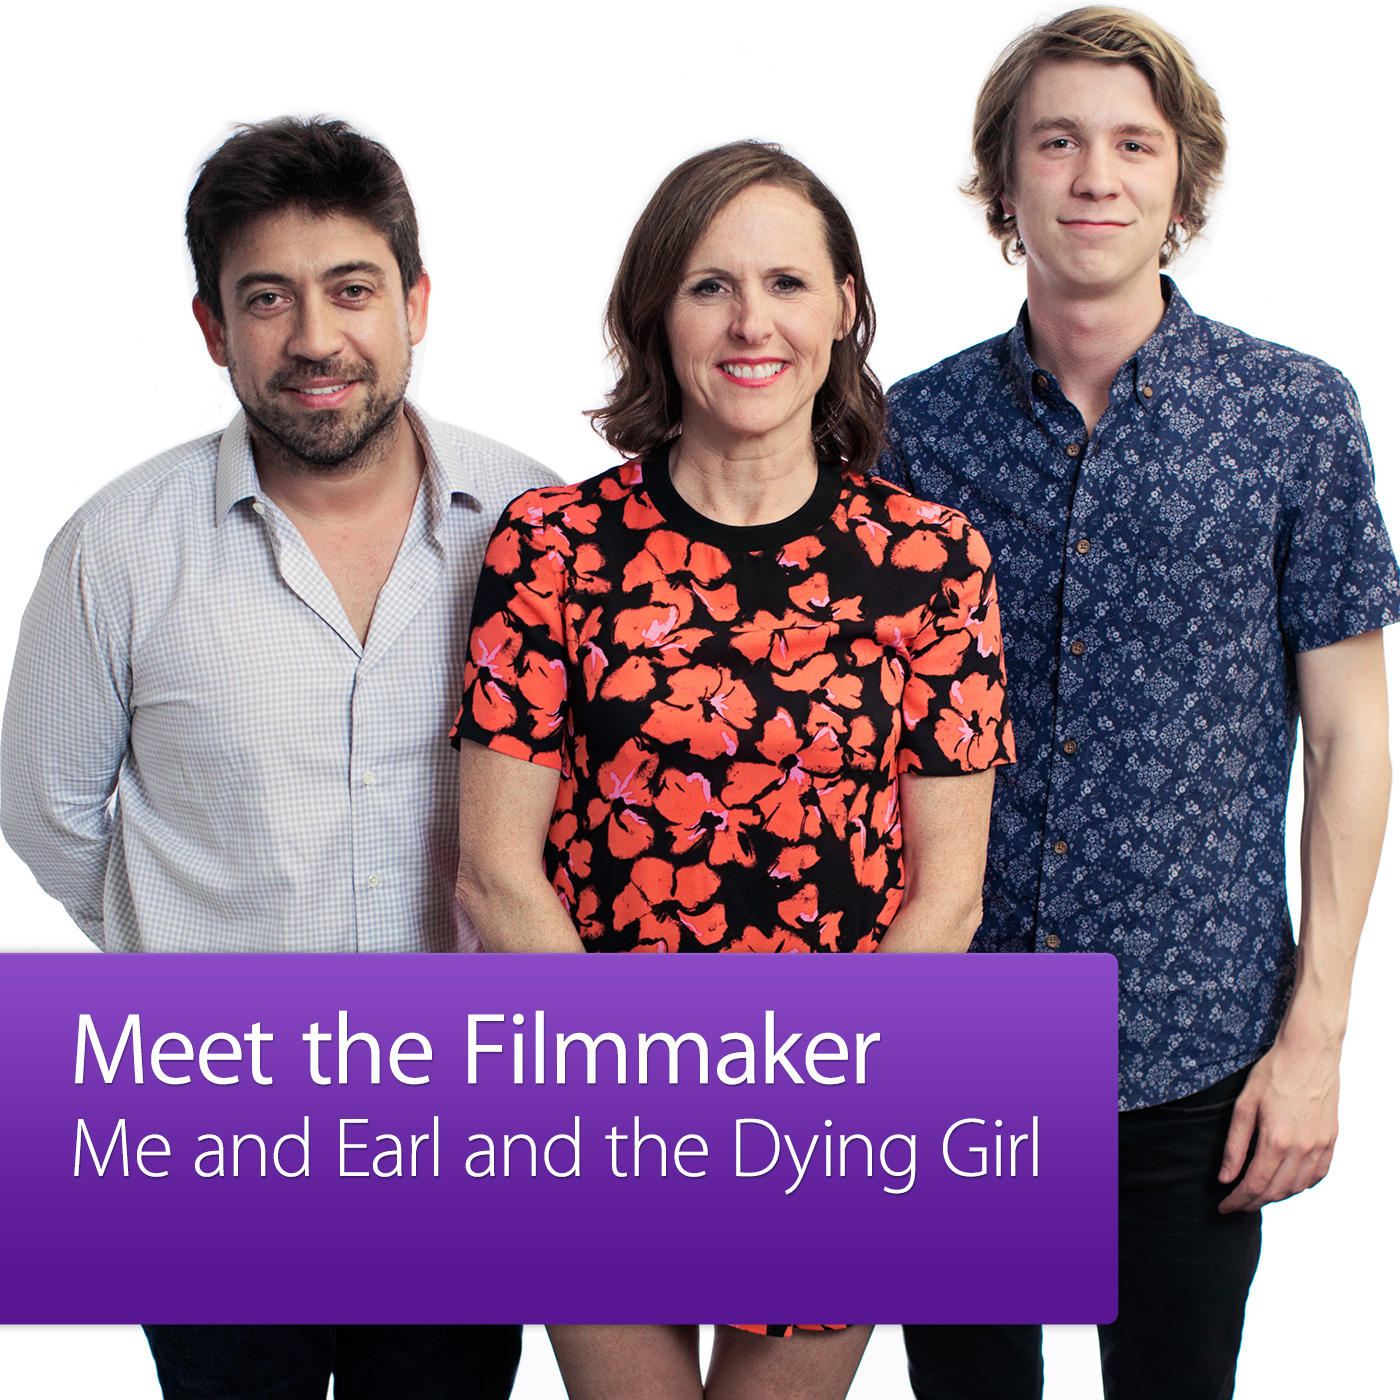 Me and Earl and the Dying Girl: Meet the Filmmaker